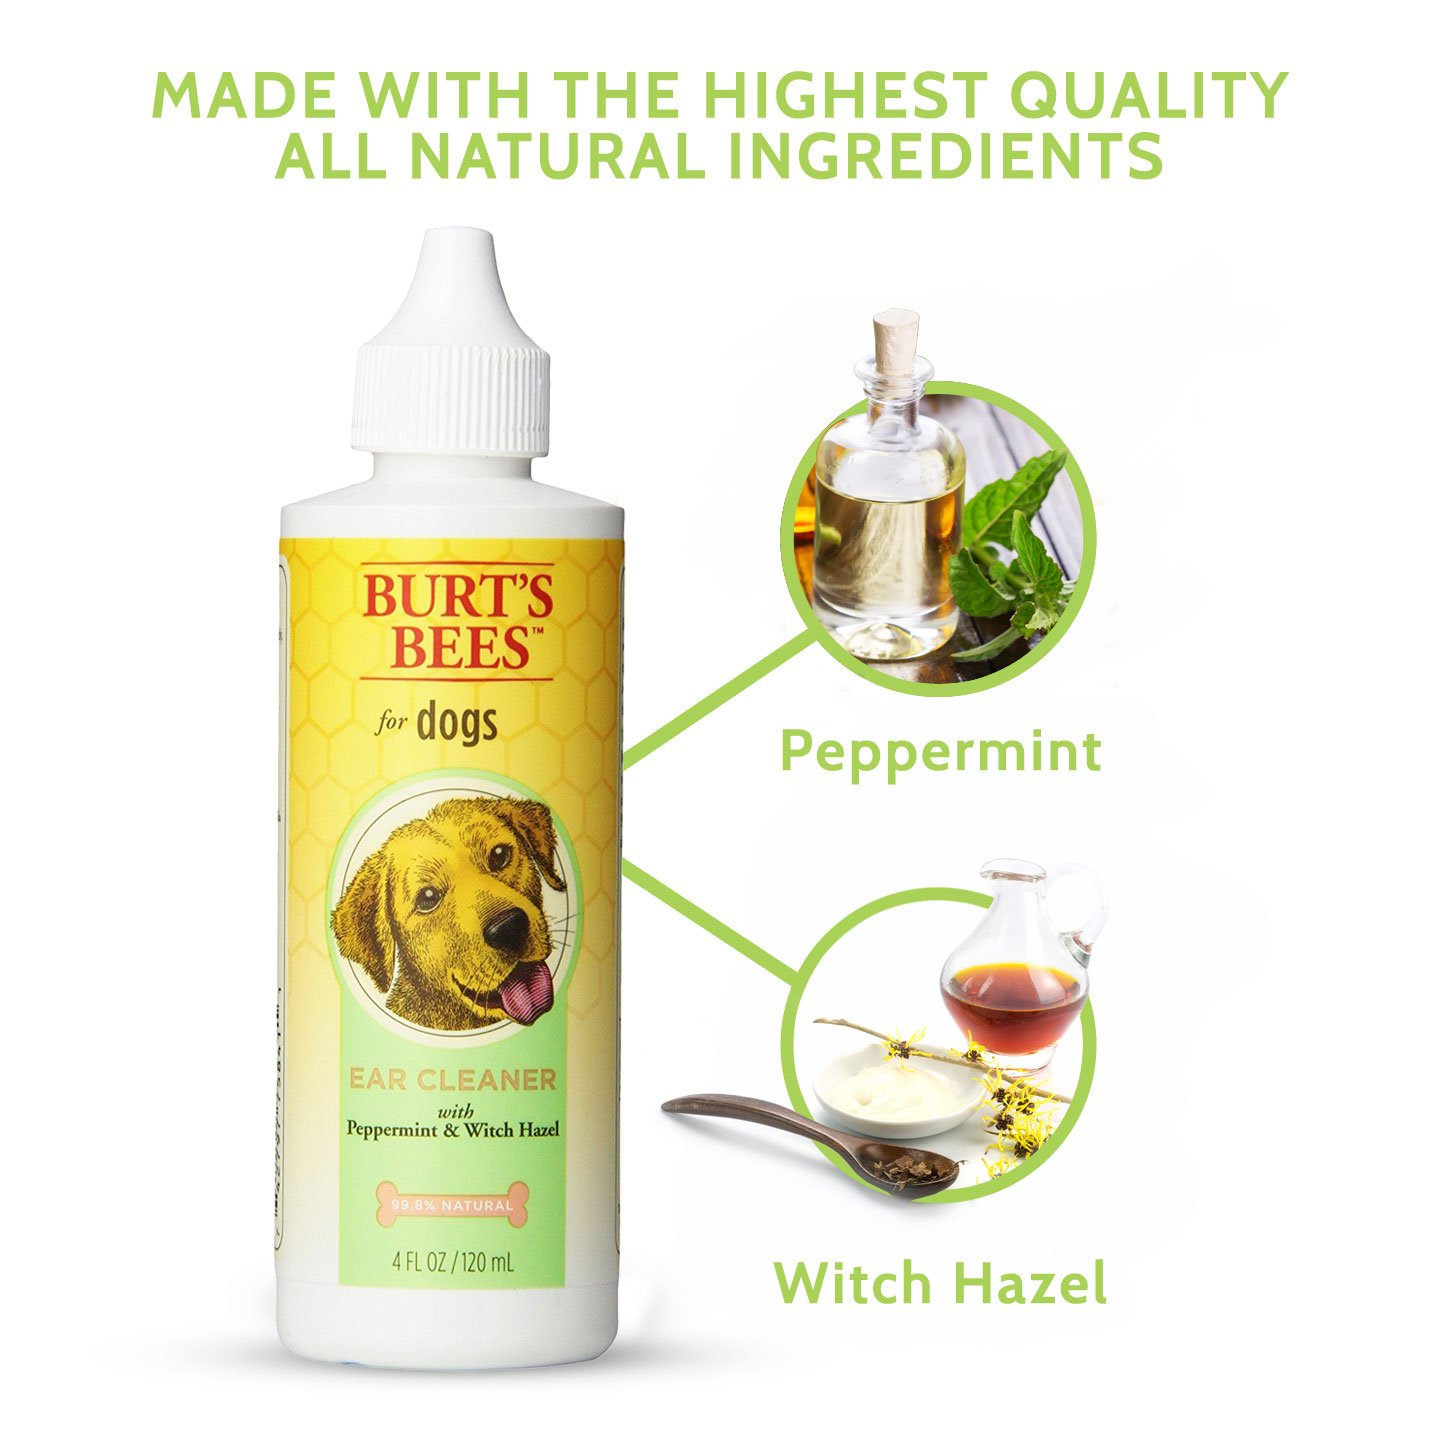 Amazon Burts Bees for Dogs Ear Cleaner with Peppermint and